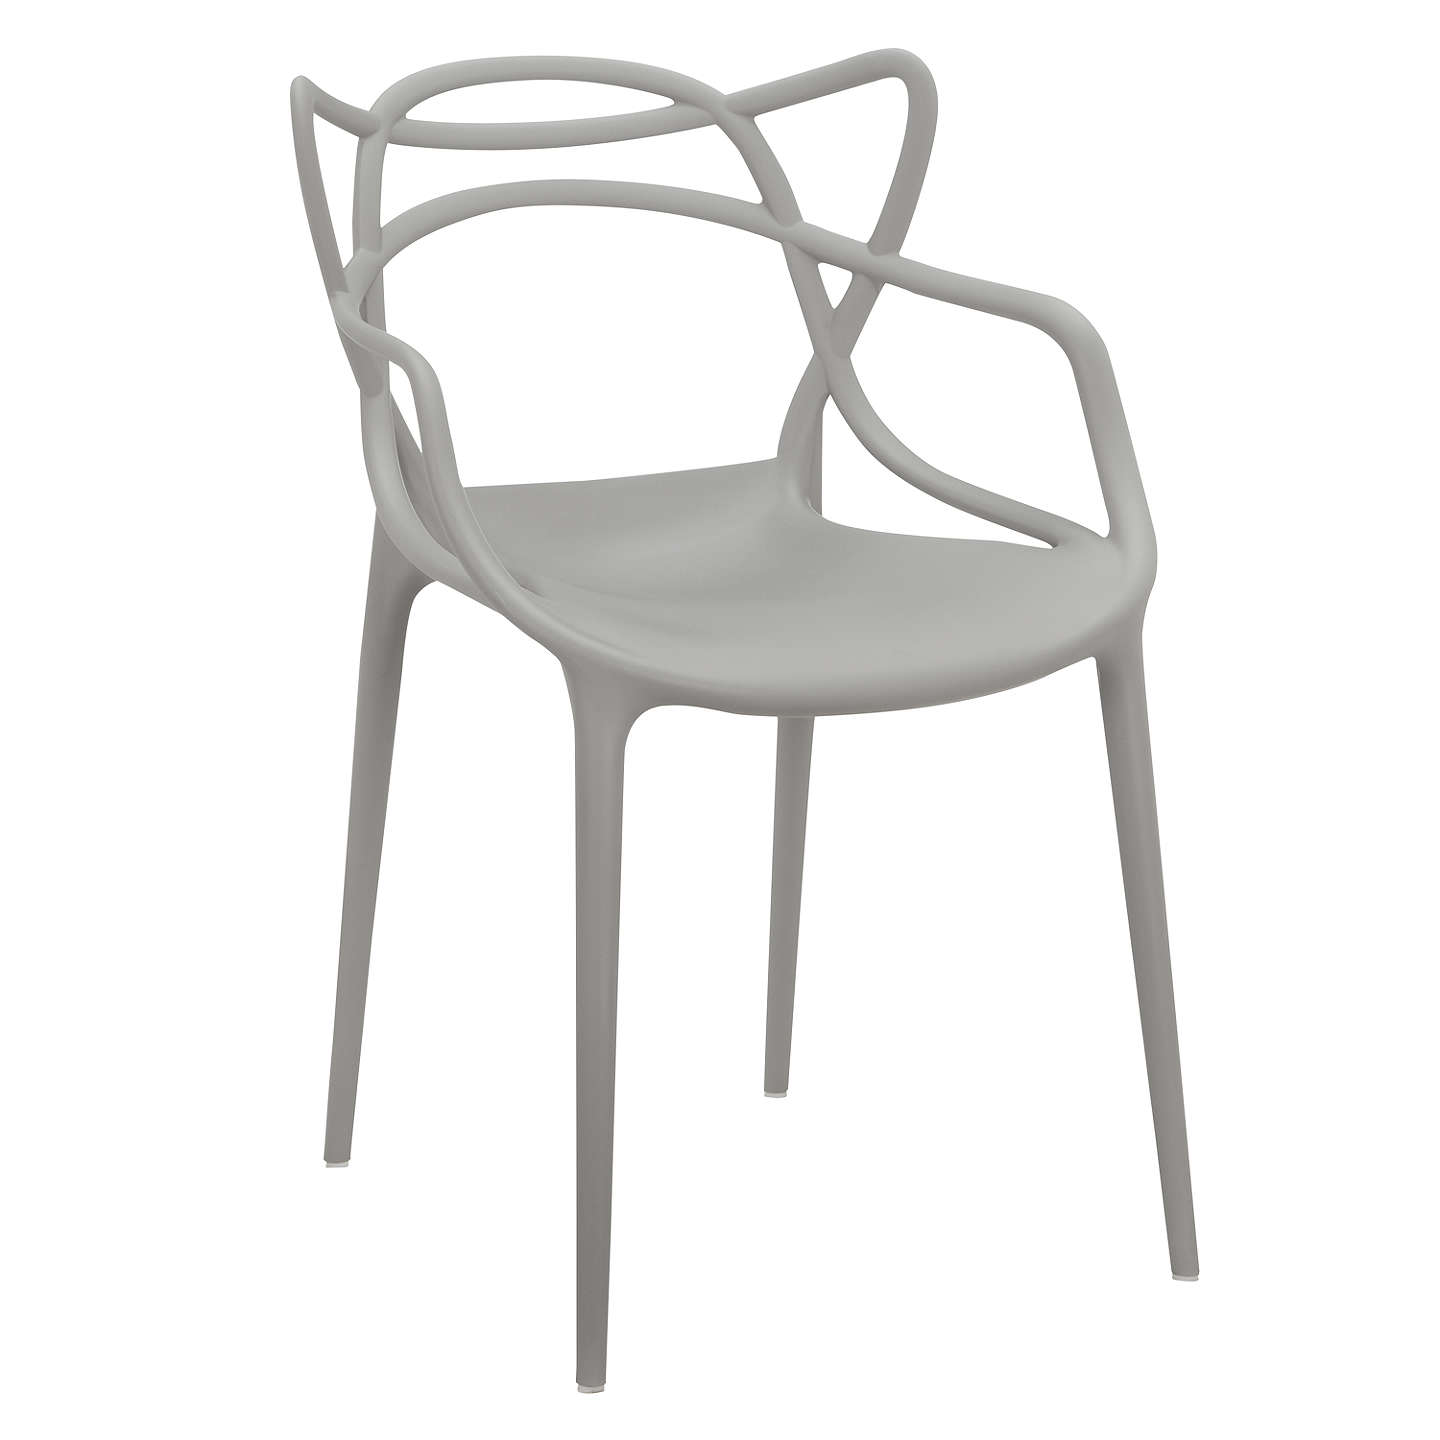 Philippe starck for kartell masters chair at john lewis for Chaise louis philippe